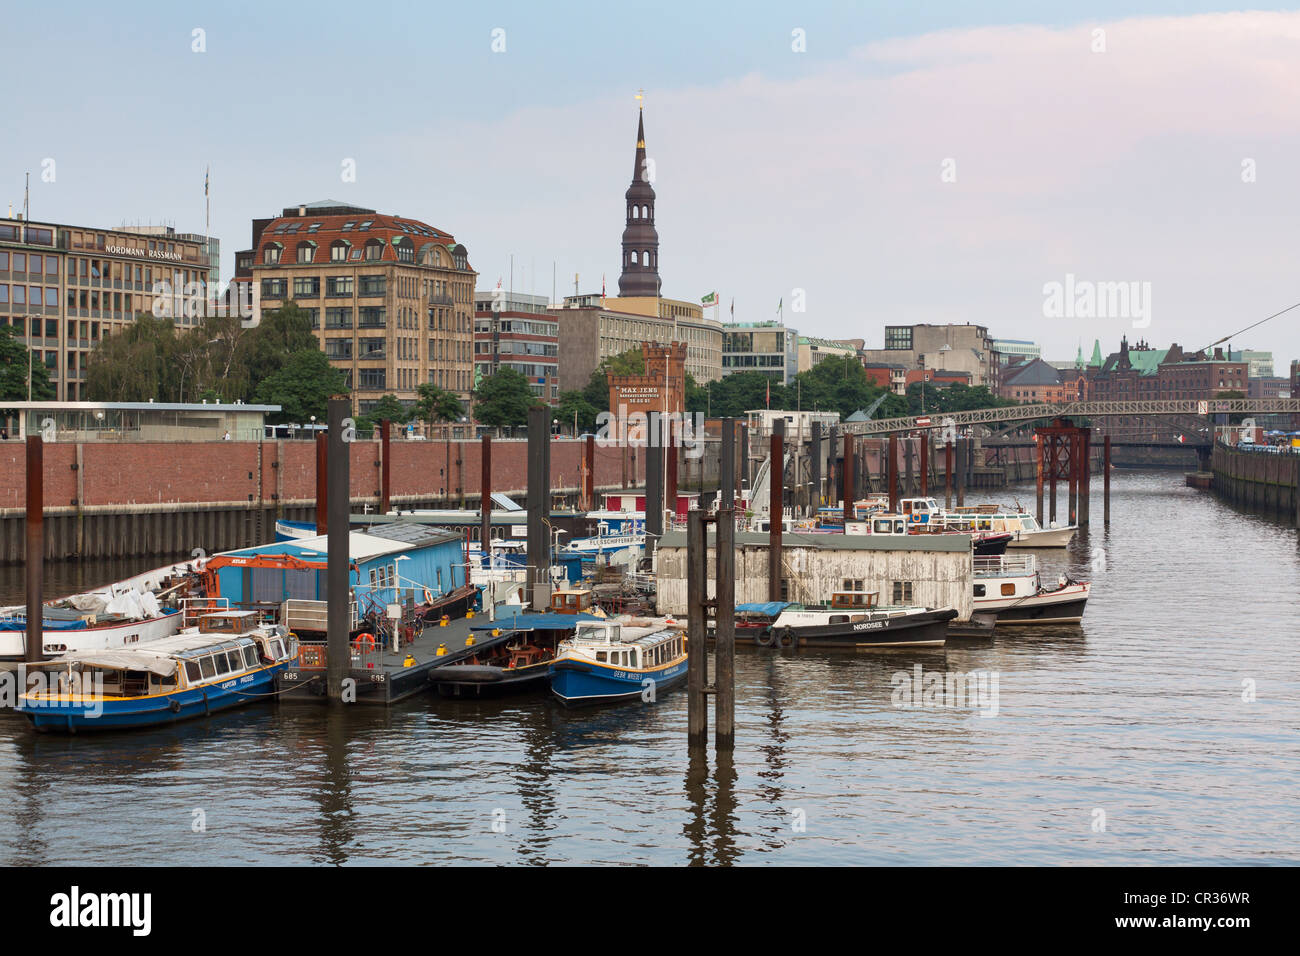 Hamburg's inland harbour with barges and fleet boats, Hamburg, Germany, Europe - Stock Image